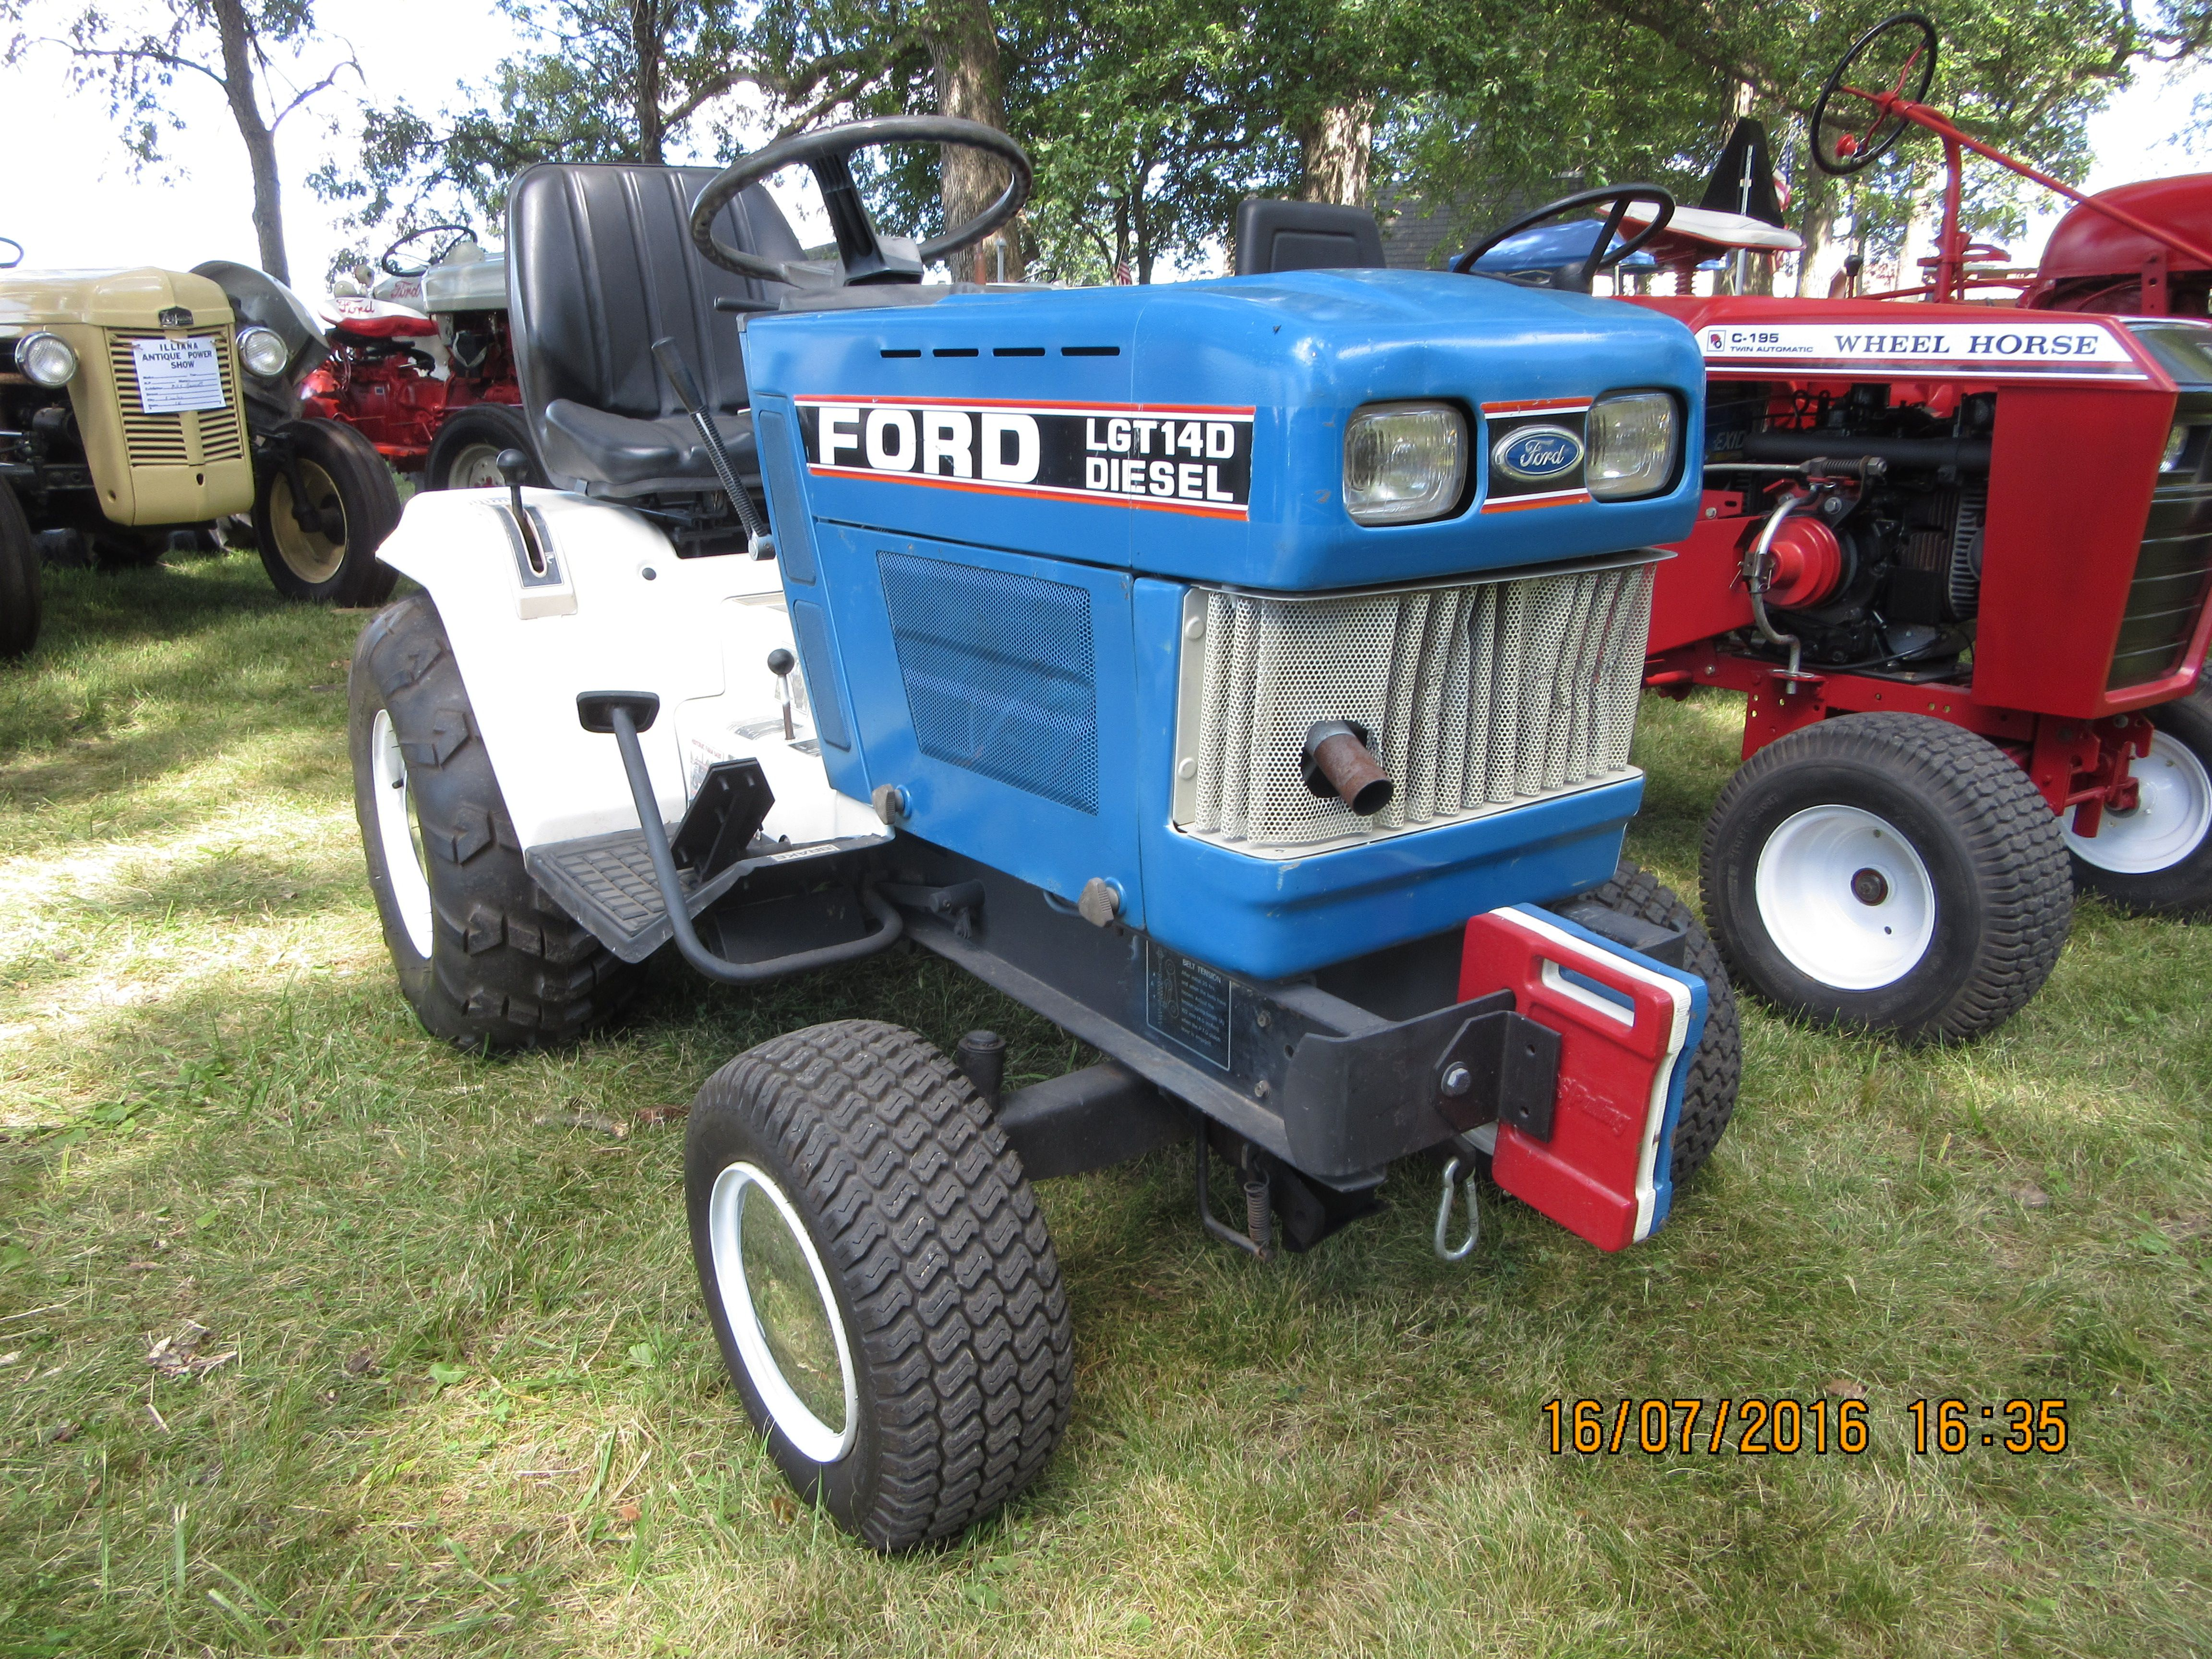 hight resolution of ford lgt 140 tractor